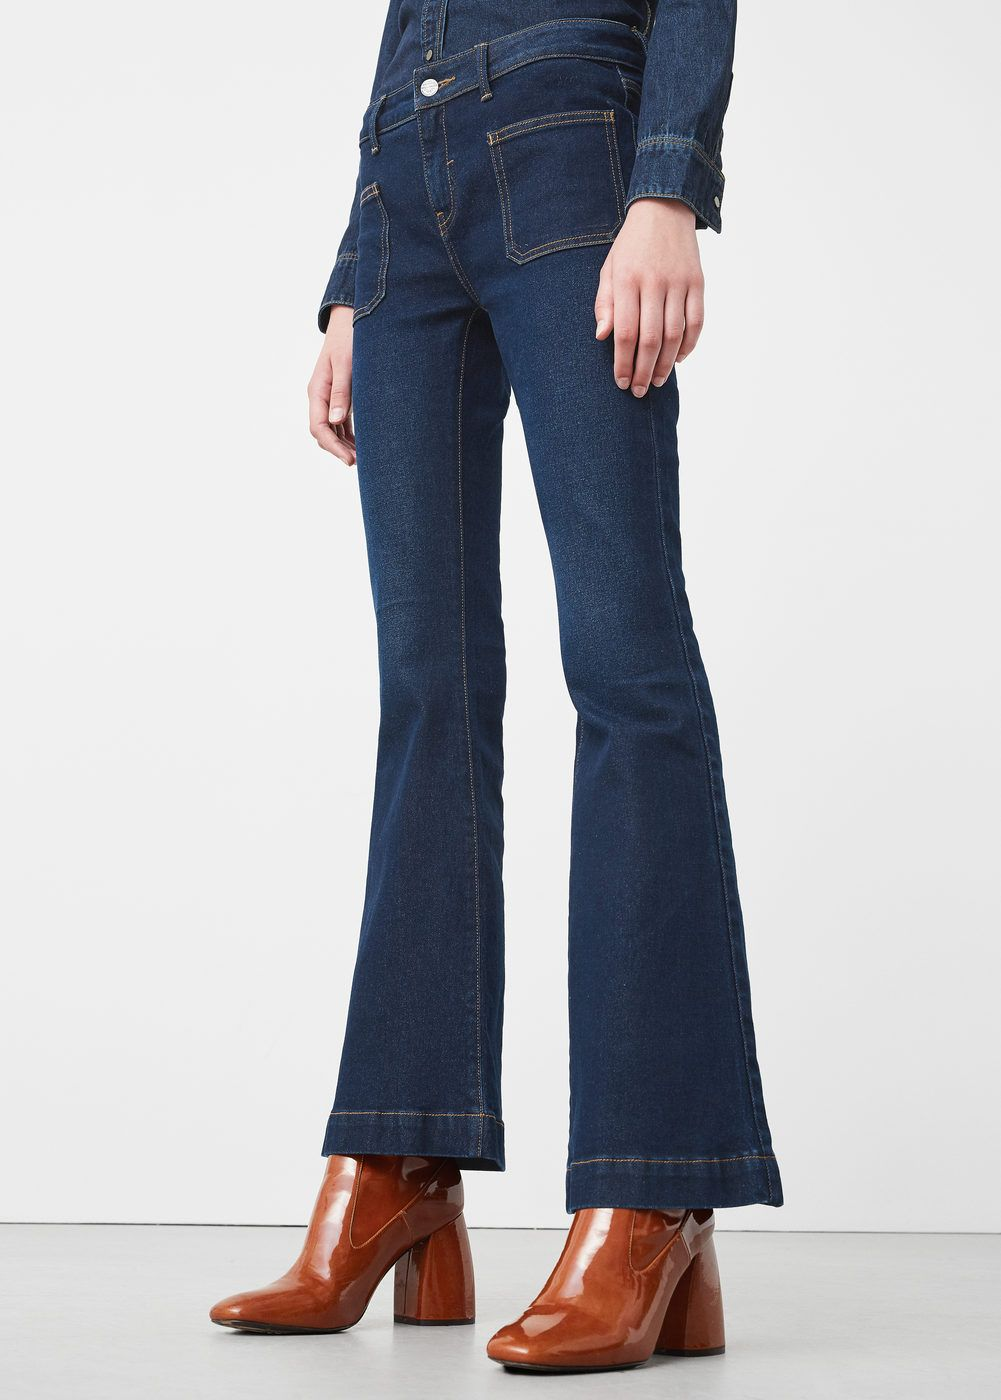 0204aa97744c Flared jeans - Jeans for Women